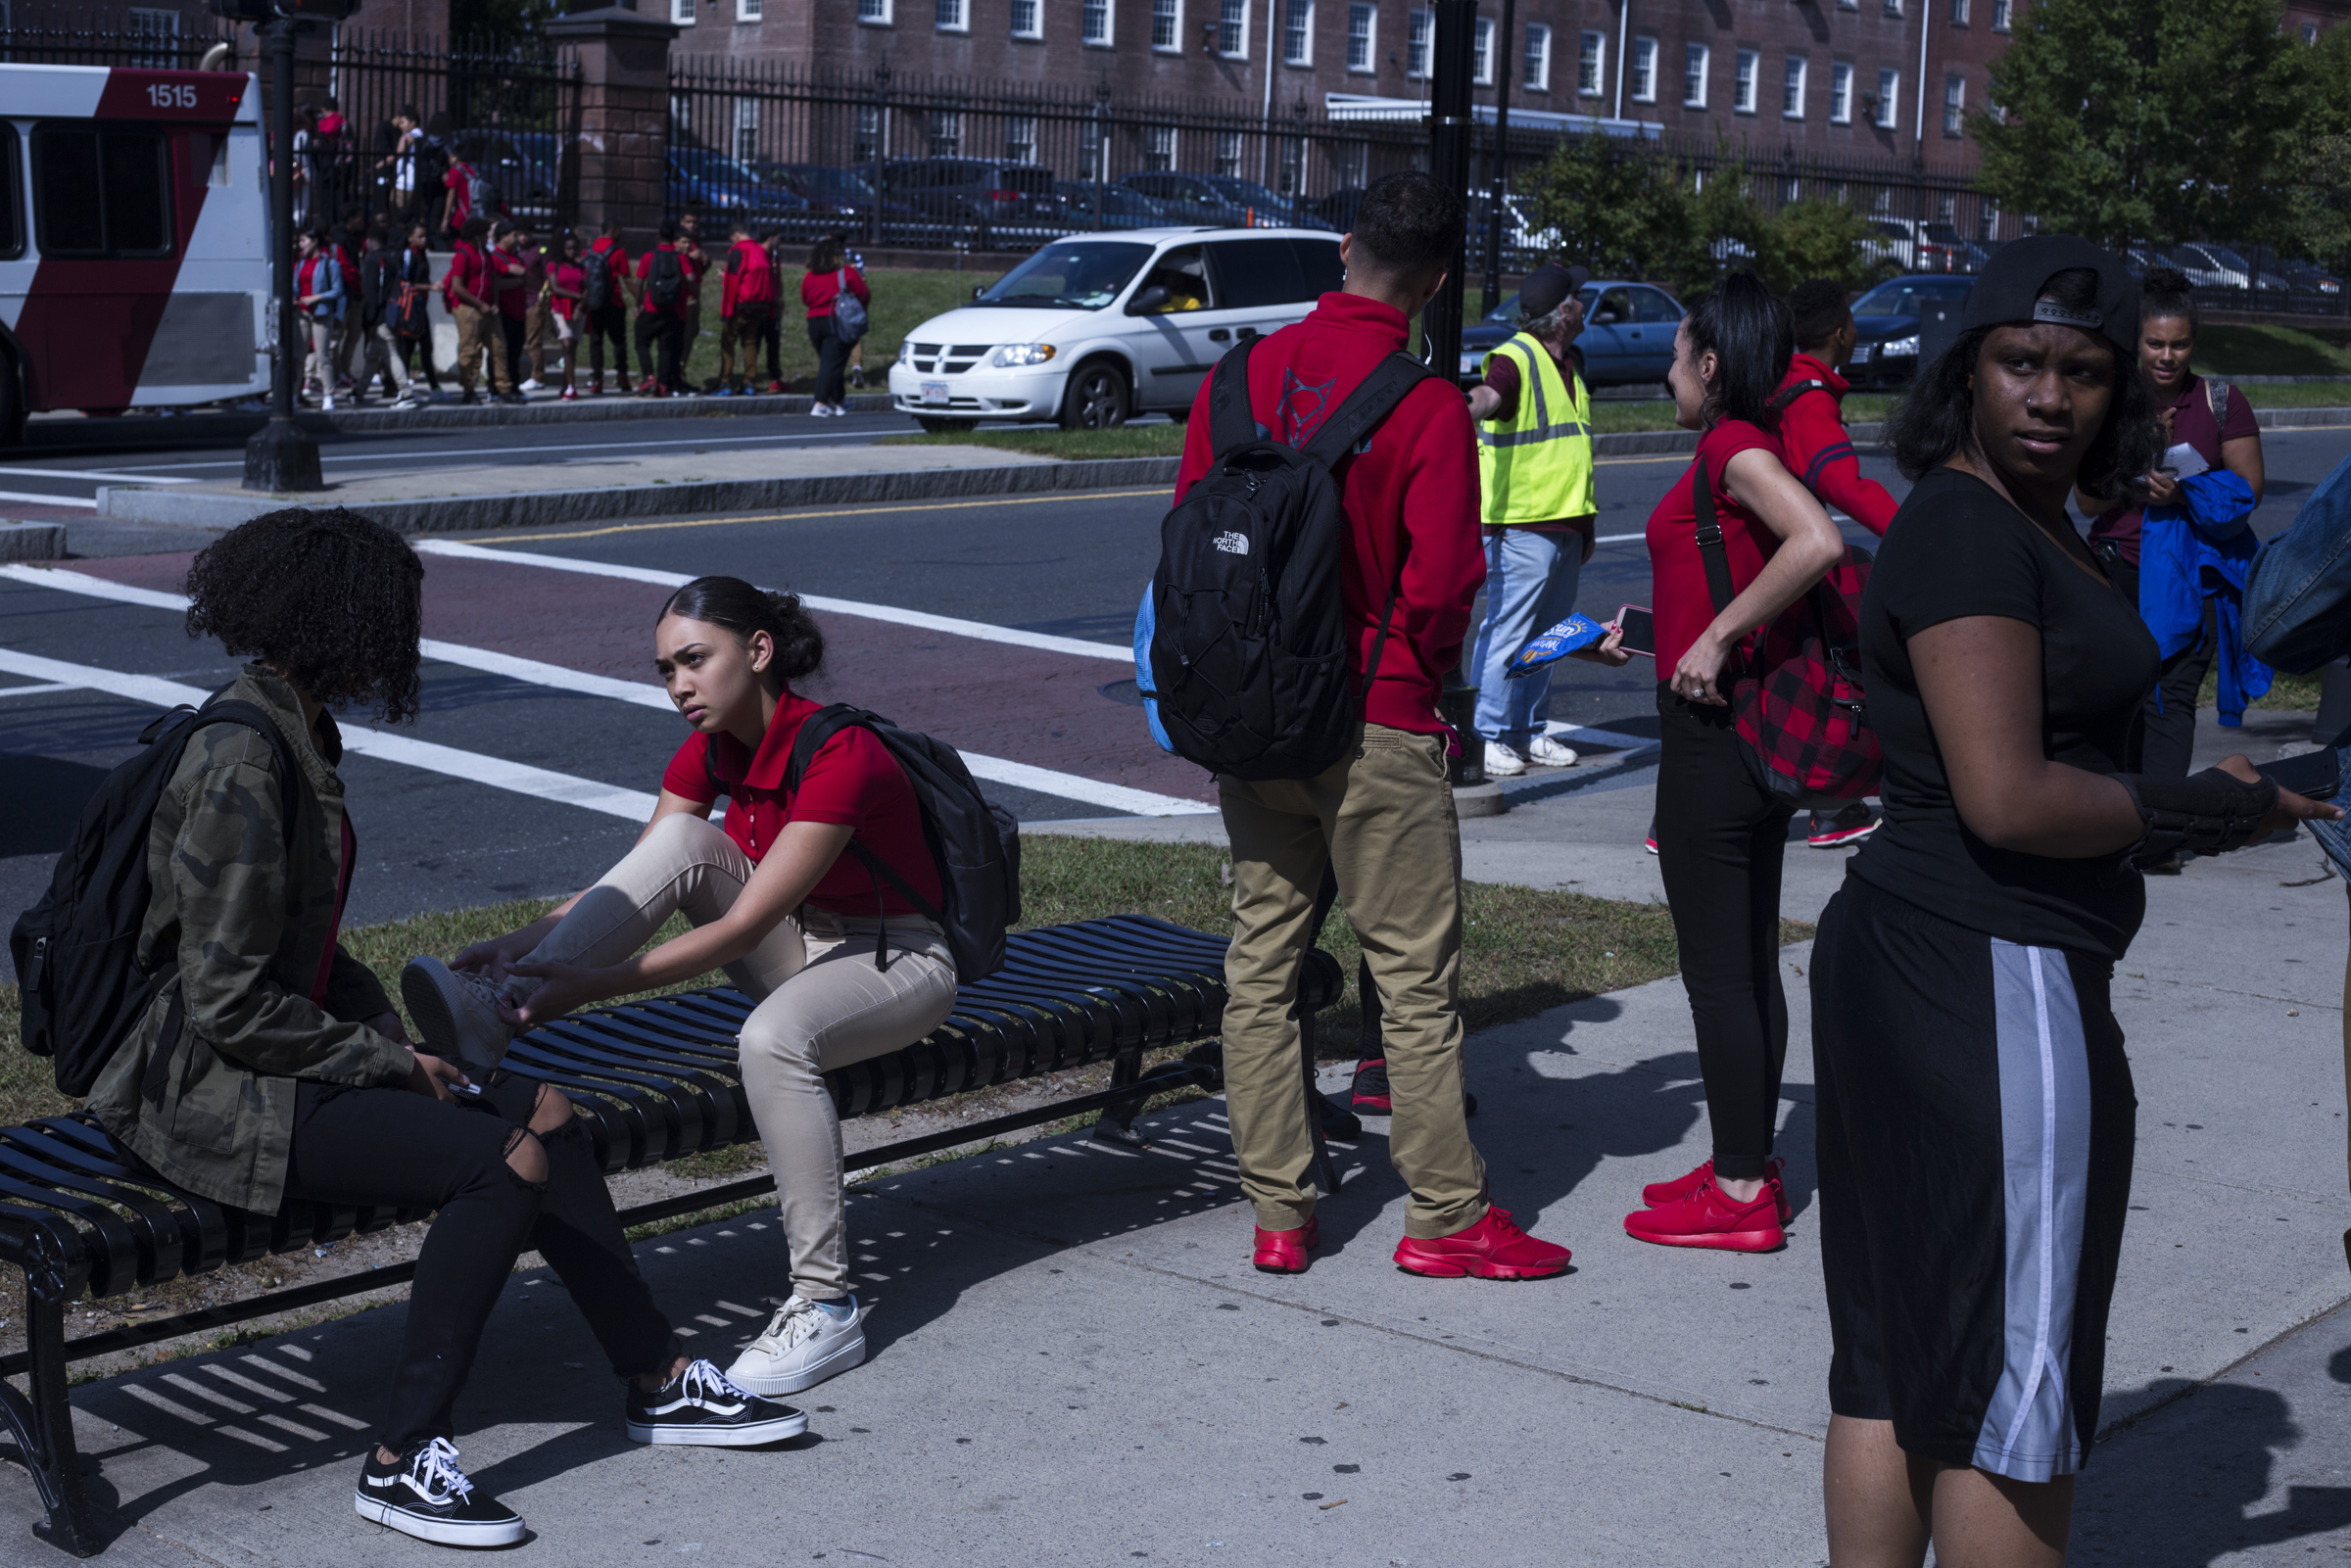 Students wait for transportation out front of the High School of Commerce following their school day in Springfield, Mass., on Monday, September, 11, 2017.